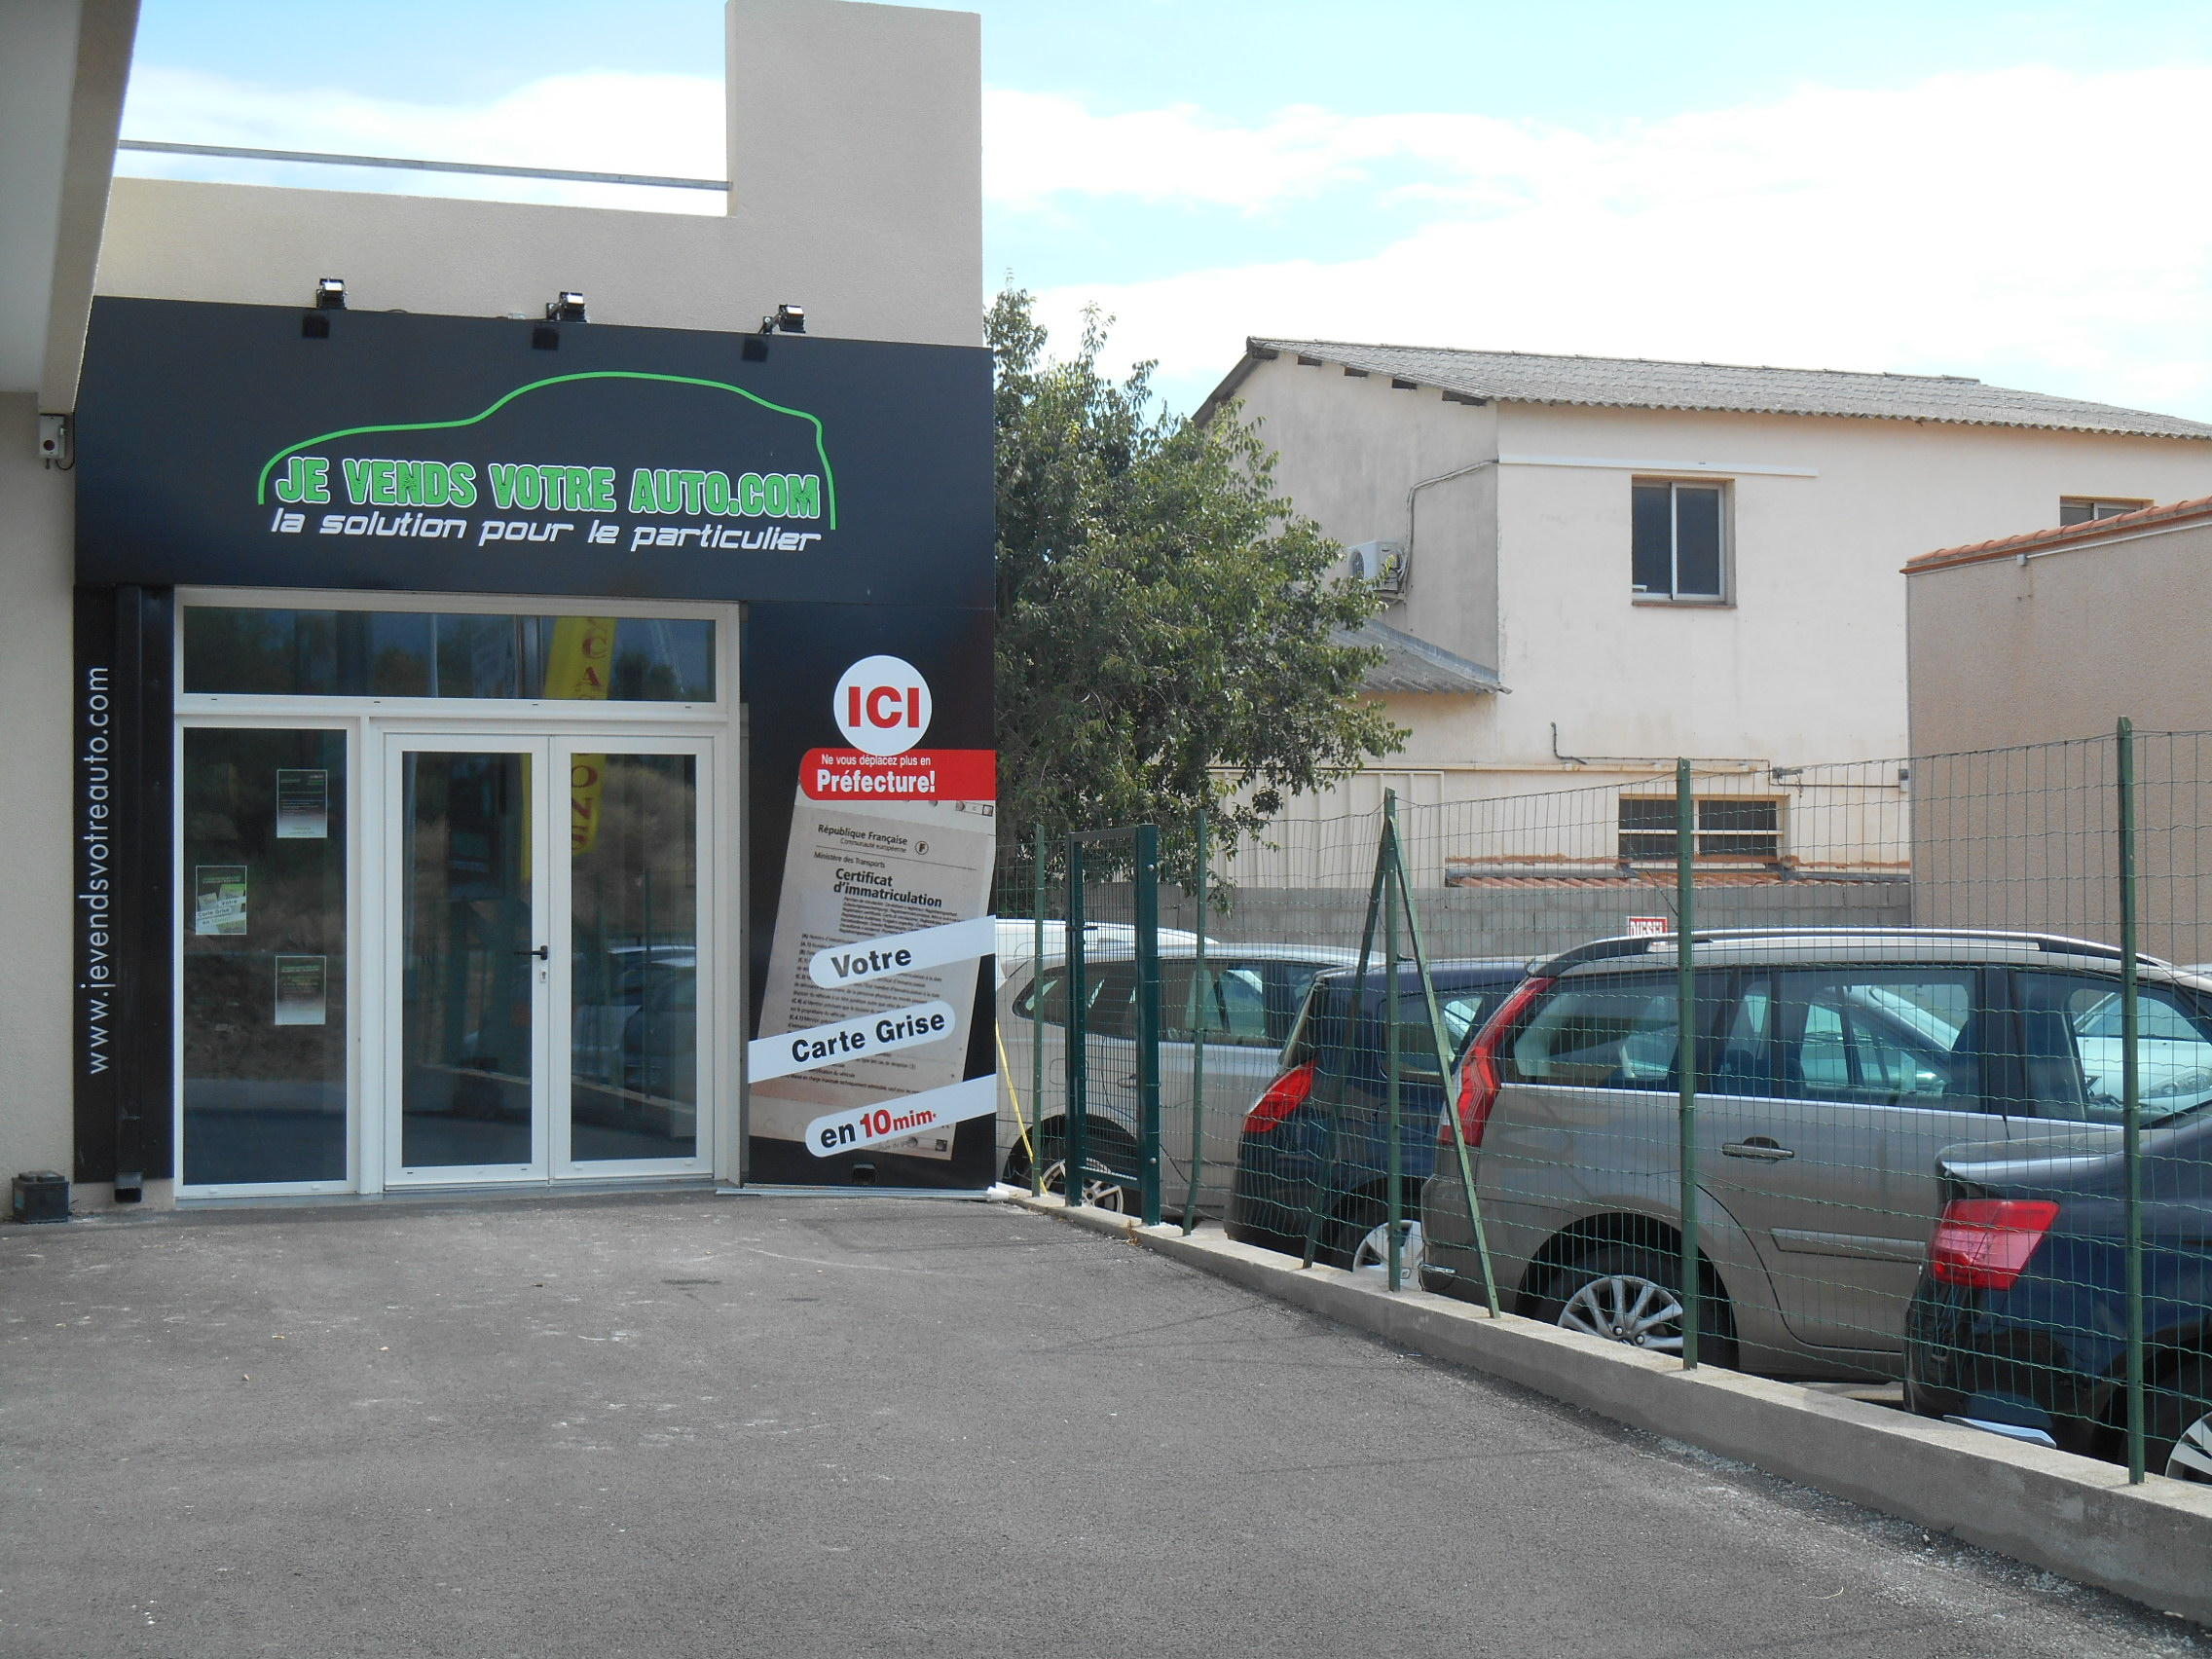 Je vends votre auto com mobile argel s sur mer for Garage automobile argeles sur mer